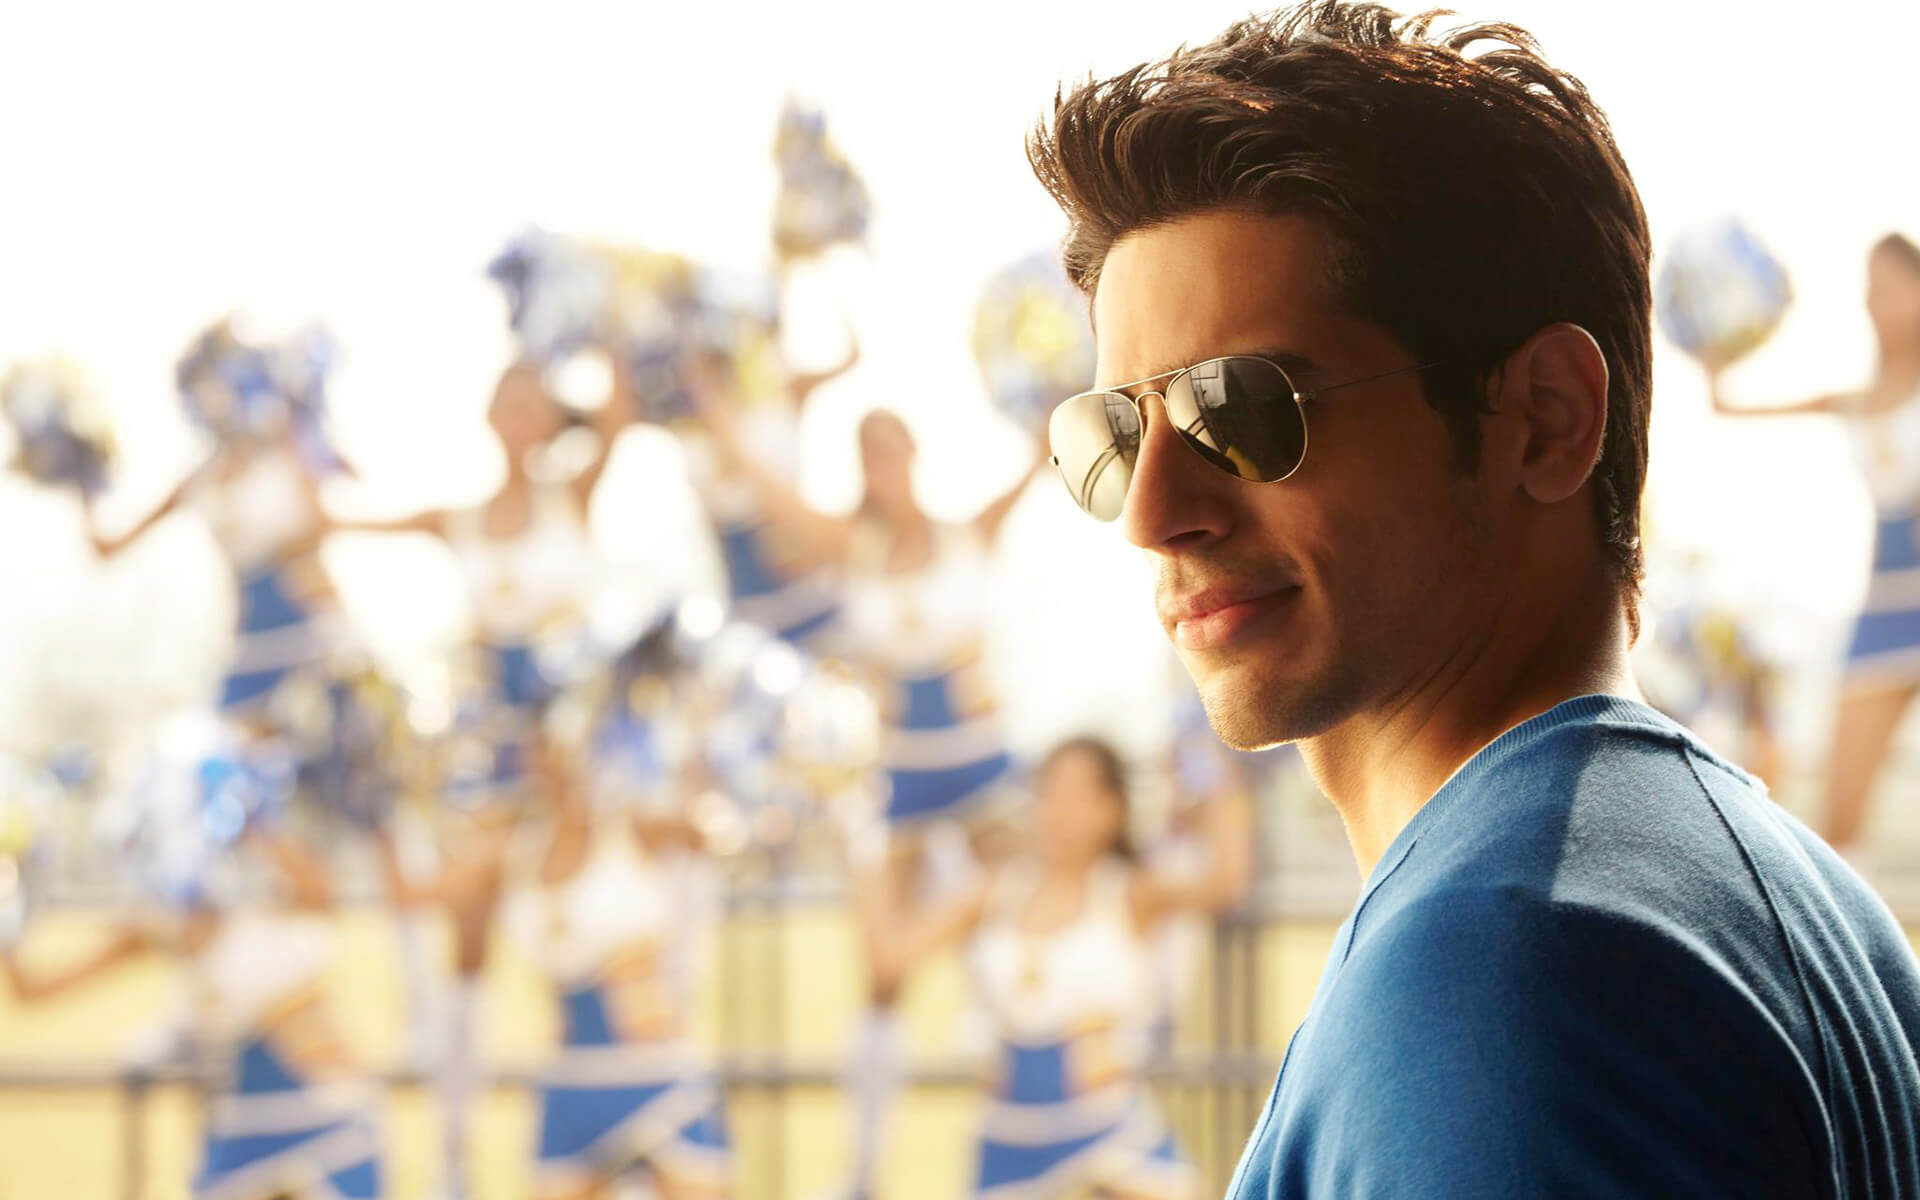 Sidharth Malhotra Movies, Height, Age, Photos, Birth Date, Biography, Girlfriend, Family, Hairstyle, Education, Details, Net Worth, Awards, Wiki, Instagram, Facebook, Imdb, Twitter (25)